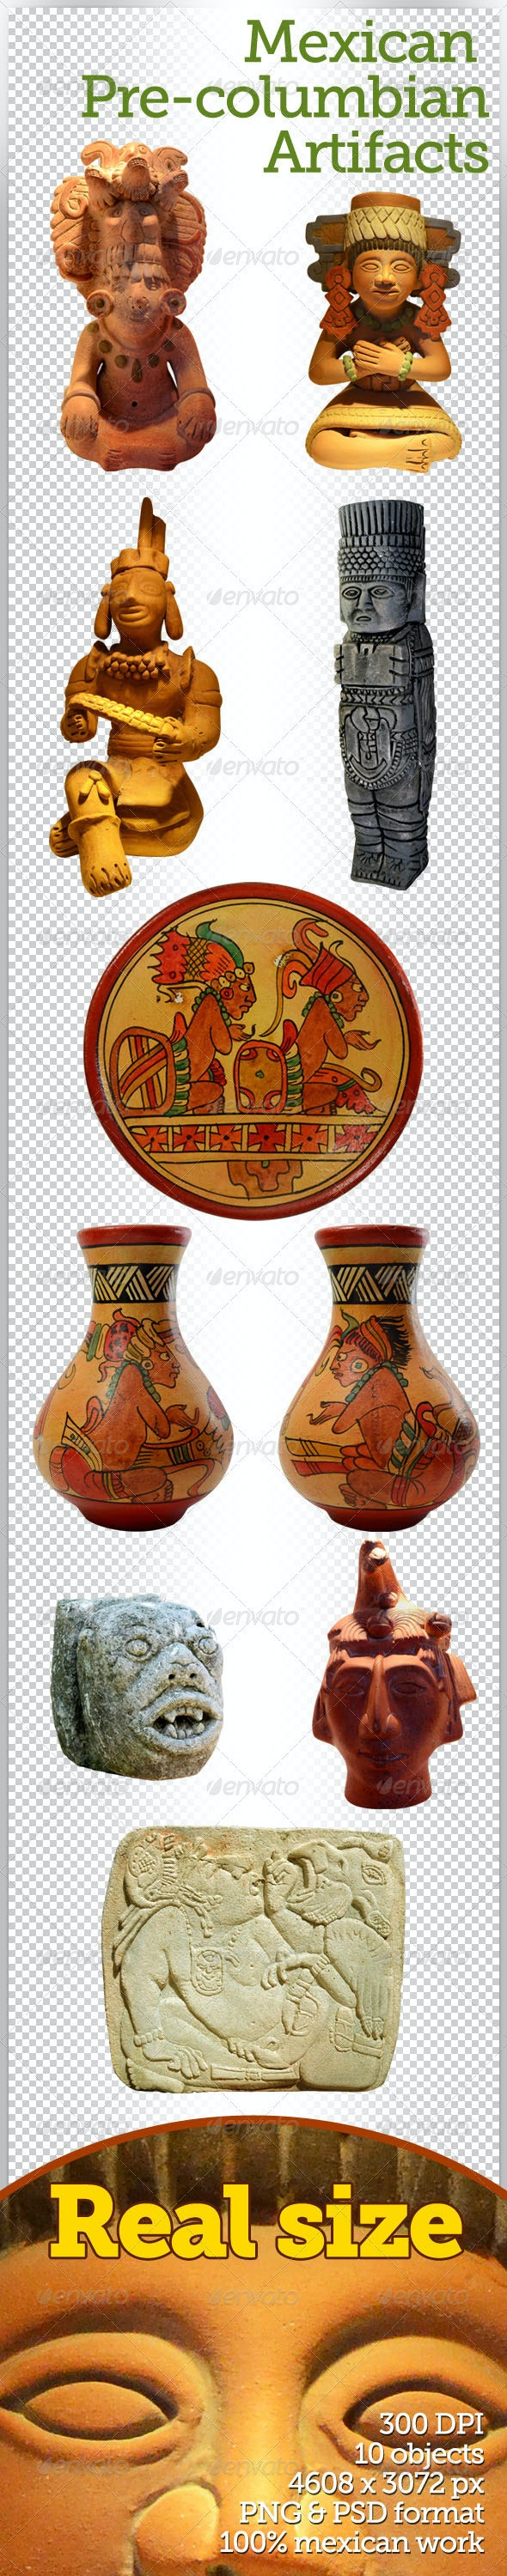 Mexican Pre-Columbian Artifacts - Miscellaneous Isolated Objects